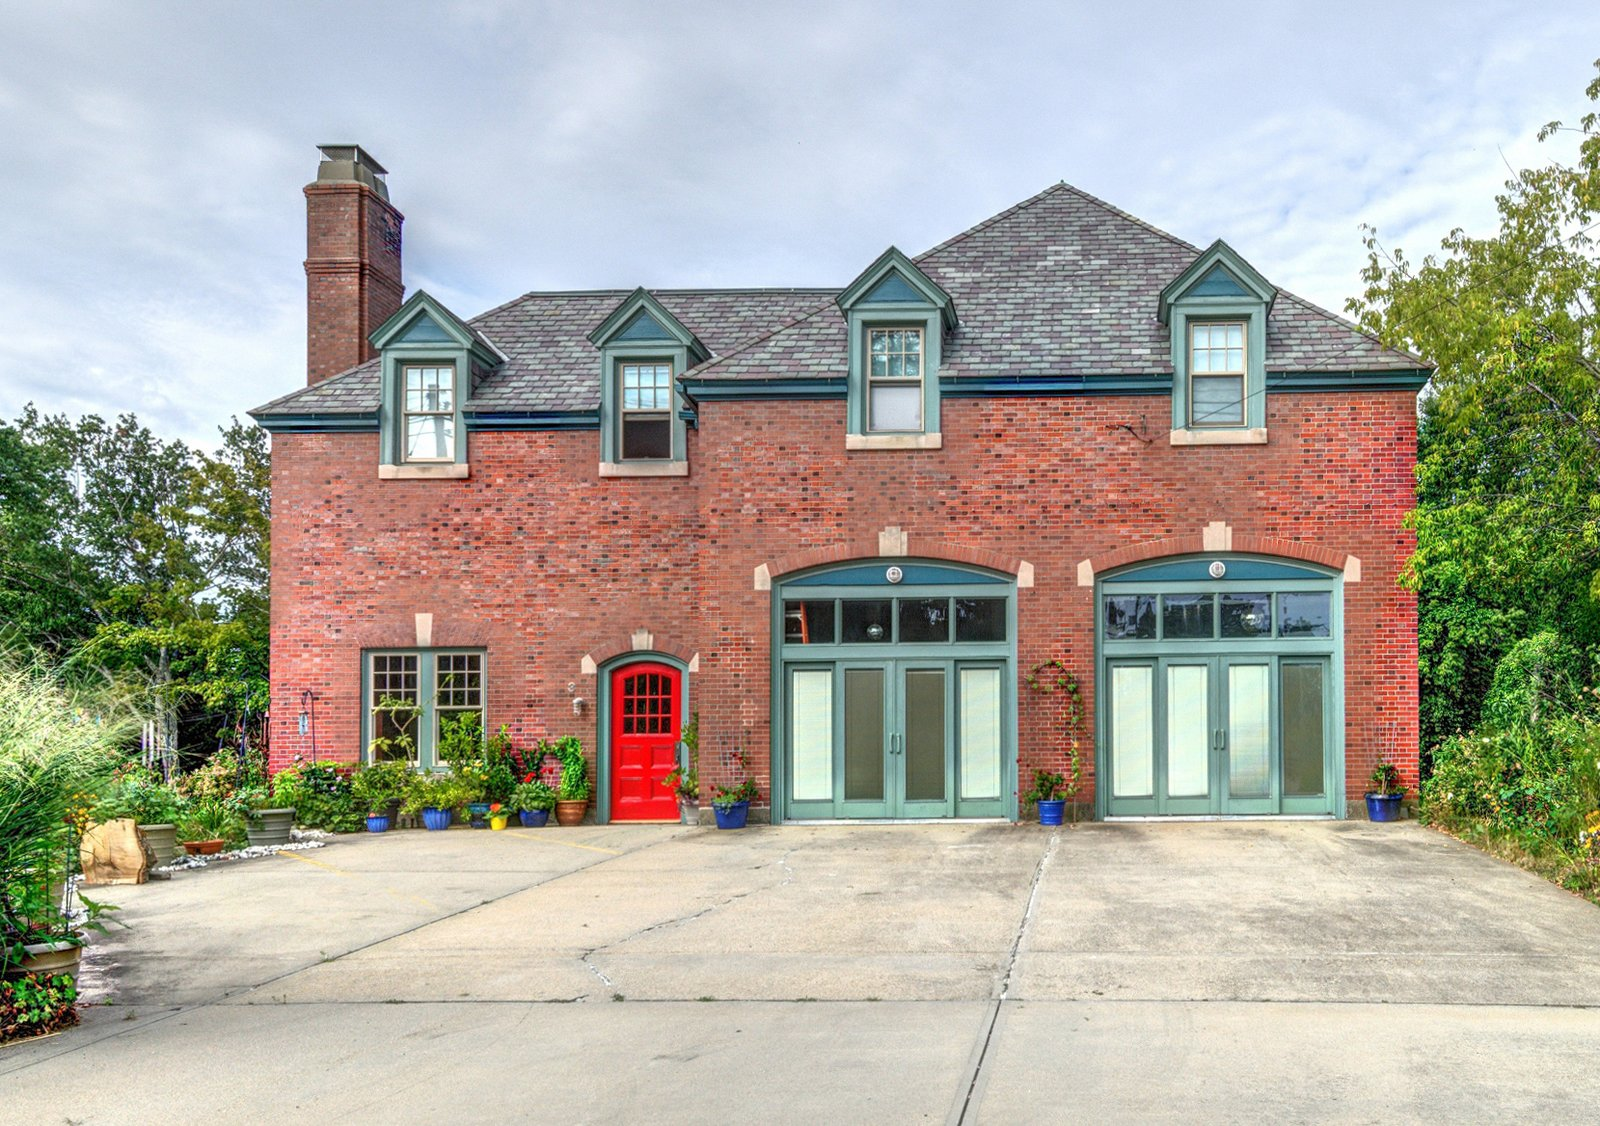 Photo 1 of 9 in A Converted Firehouse Fit For an Artist Is Listed at $749K